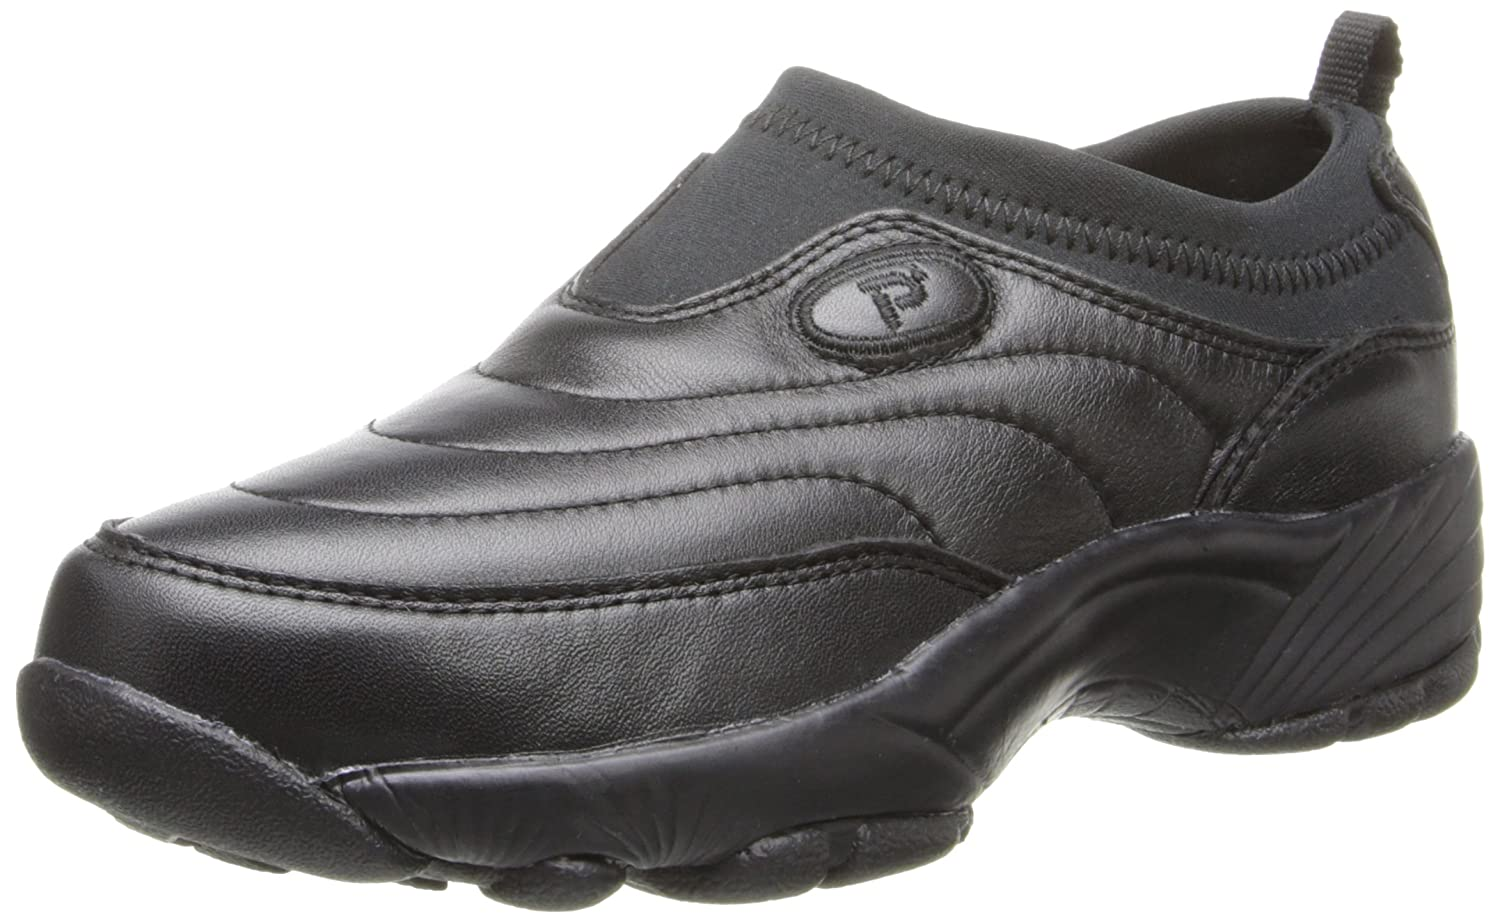 Propet Women's W3851 Wash & Wear Slip-On B000BO12J8 11 B(M) US|Black